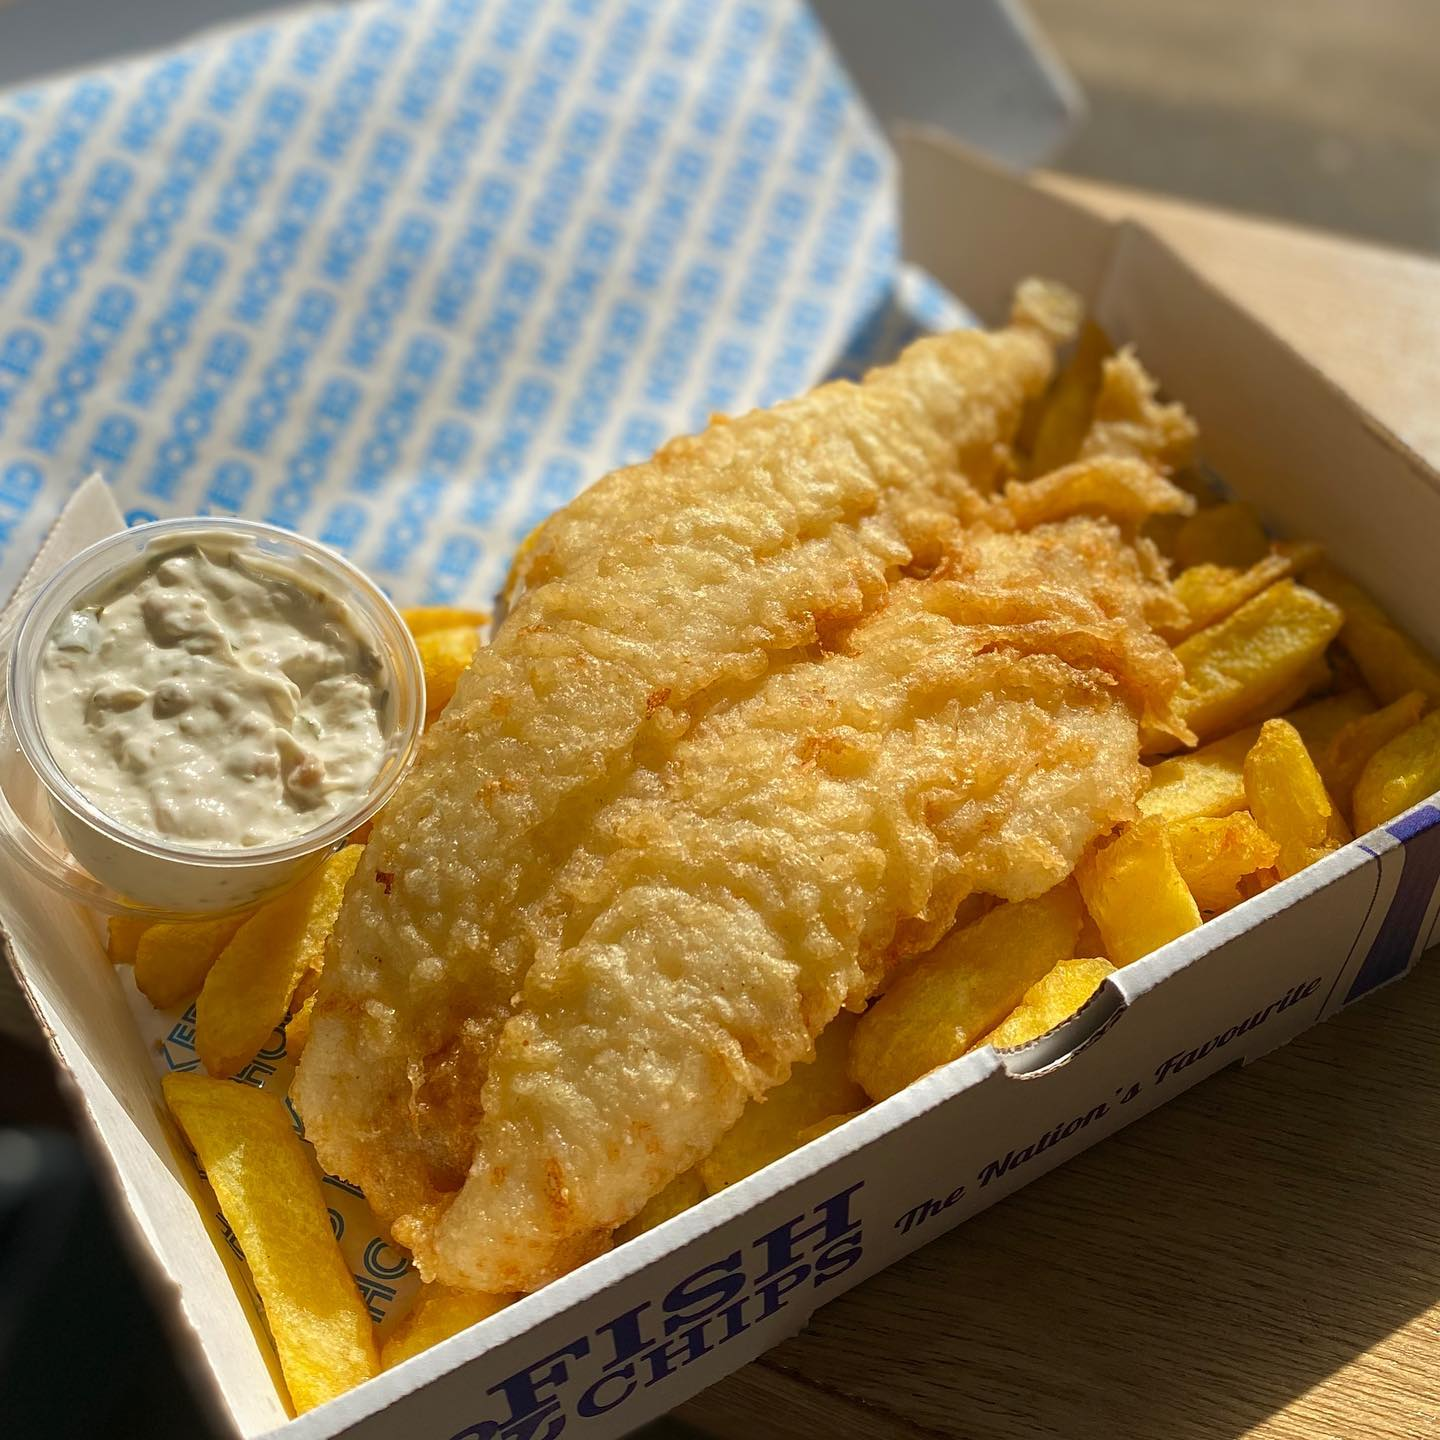 Hooked - Fish & Chips